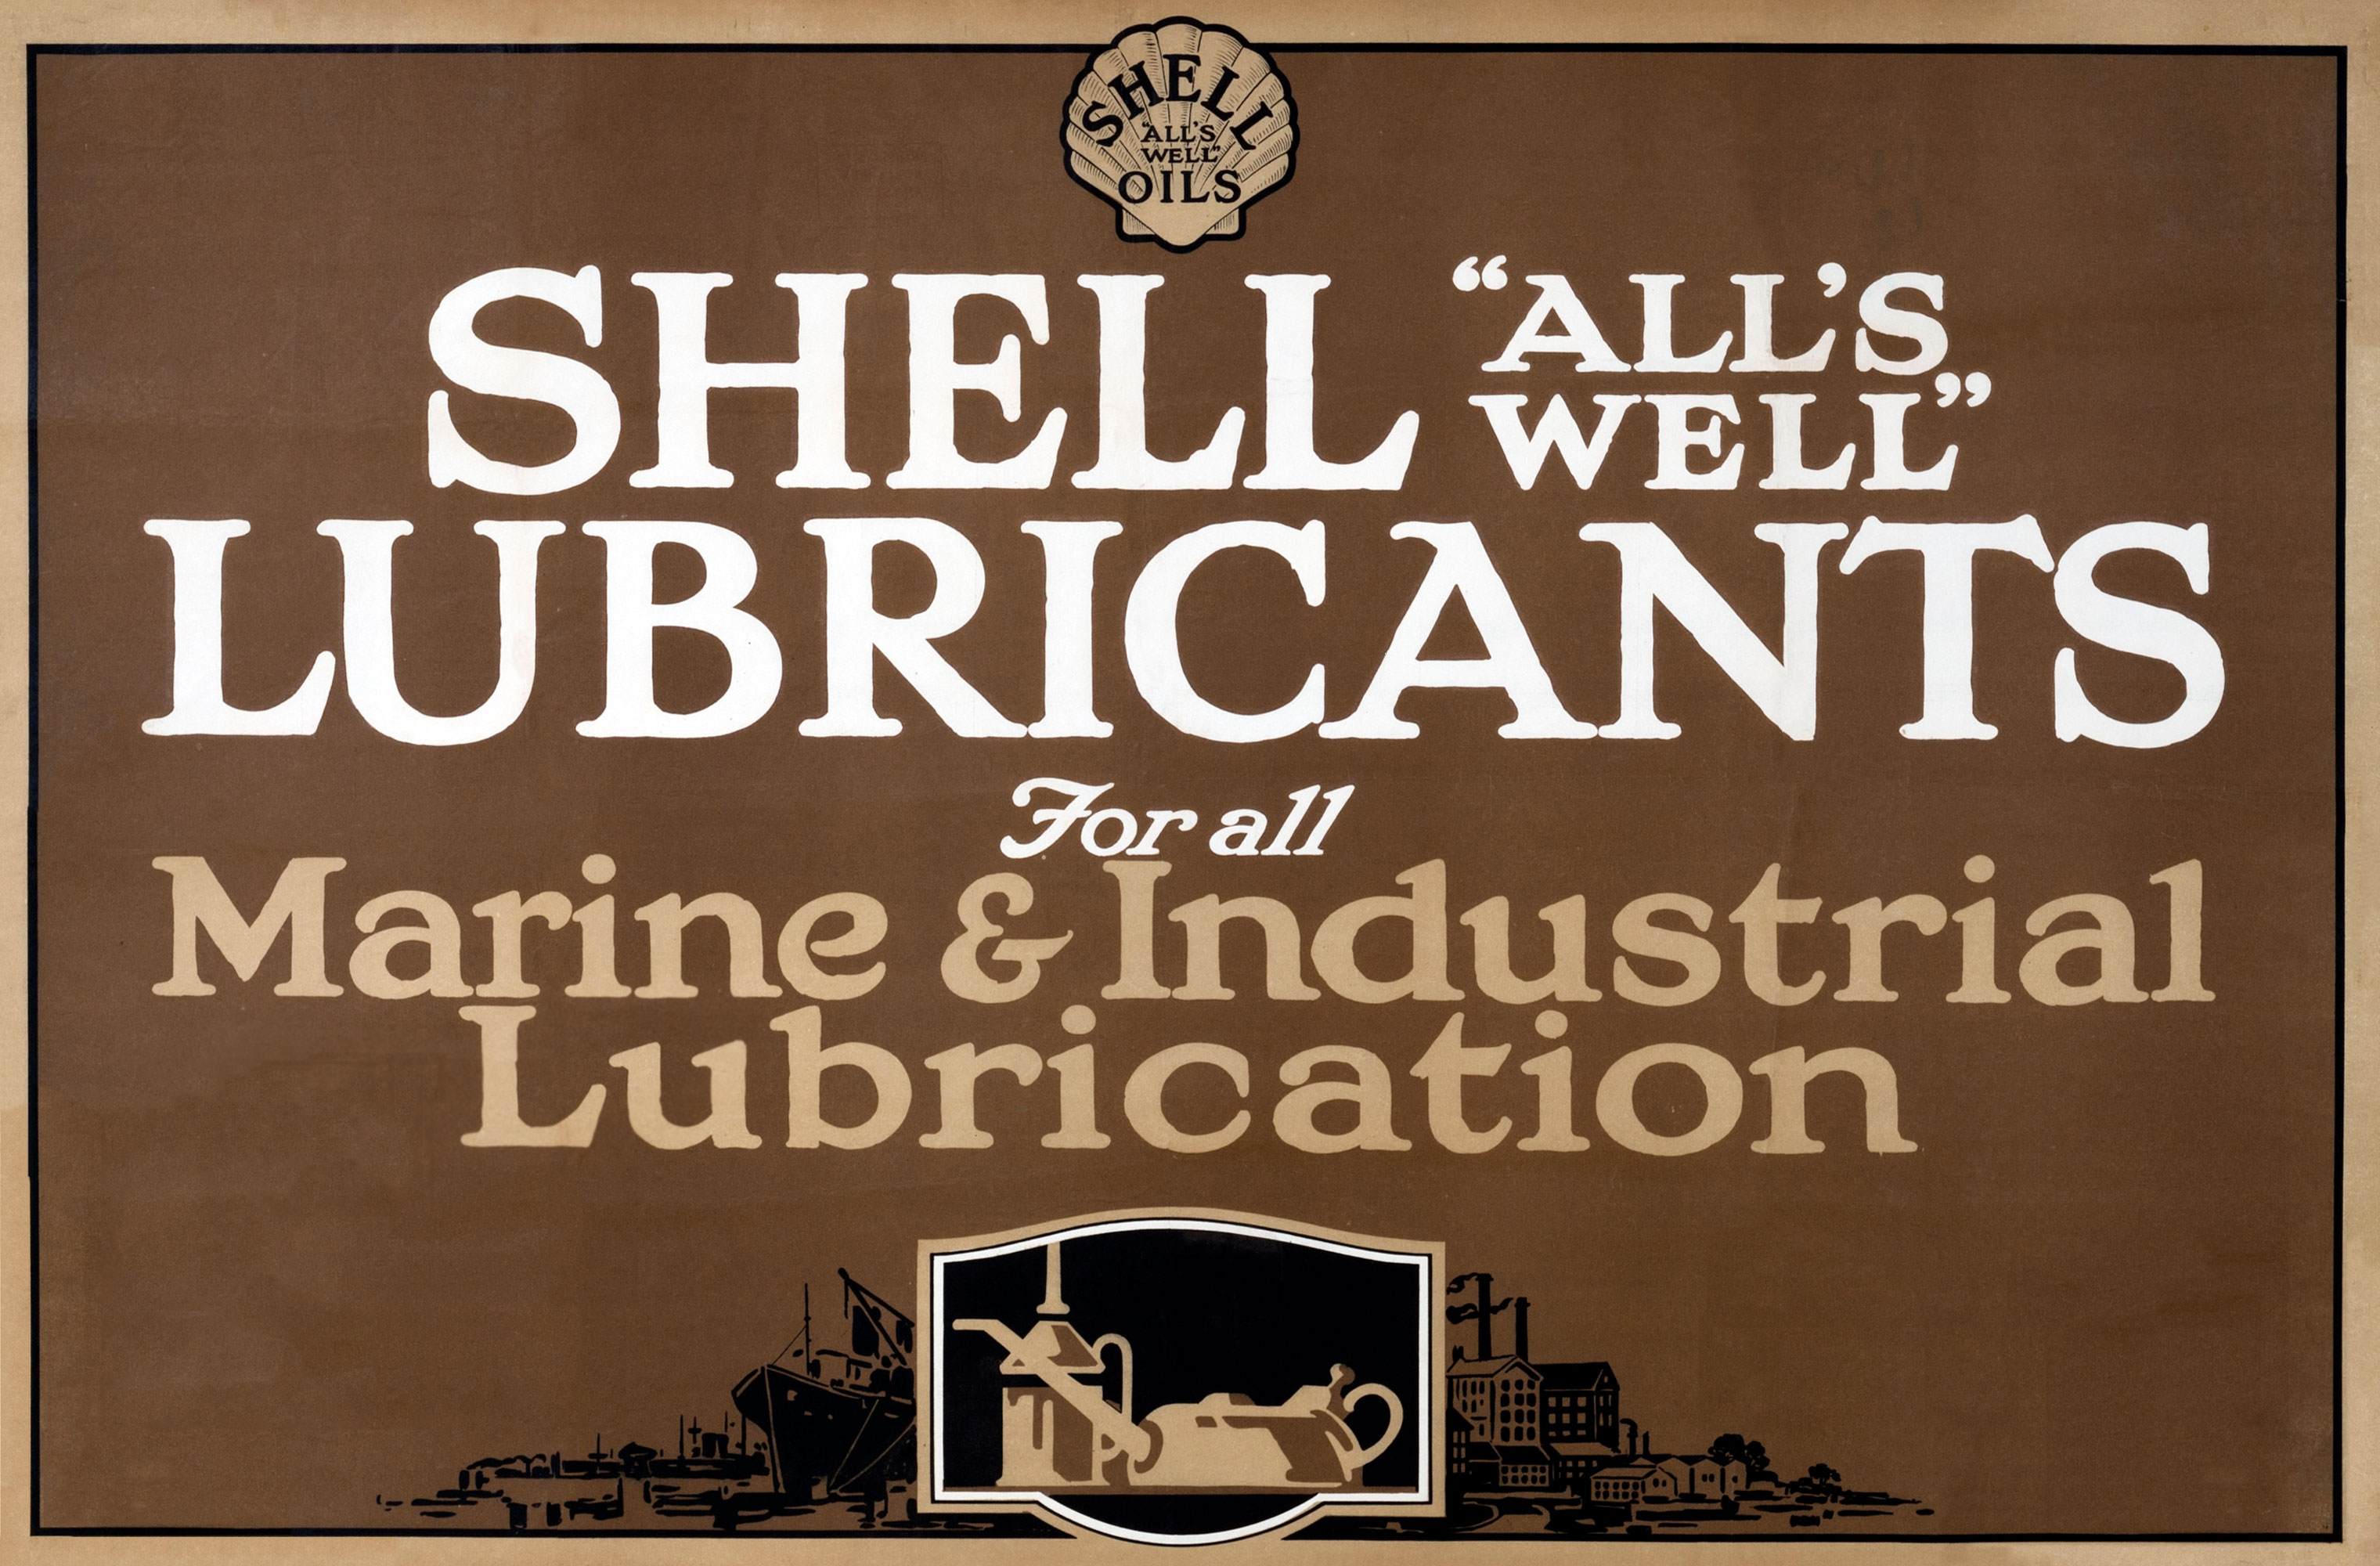 Shell poster number 33c, Marine and Industrial Lubrication (1922) by Shell Studio. Illustration shows oil cans in front of a marine/industrial background.